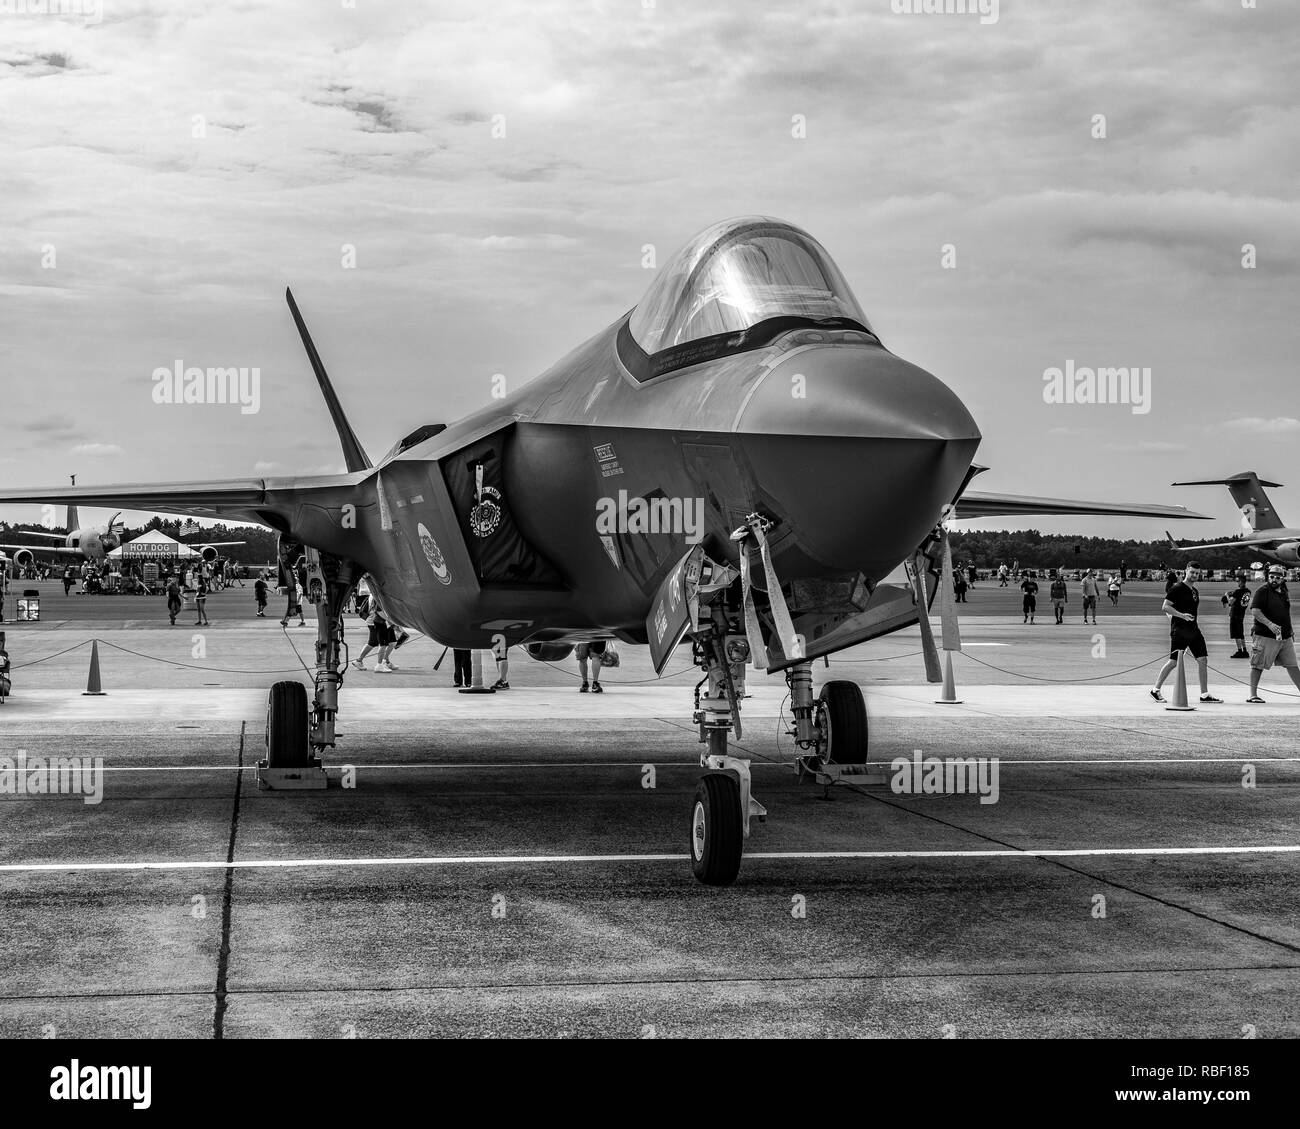 An F-35 military Fighter Jet on static display in an Air Show at Westover Air Force Base in Massachusetts - Stock Image